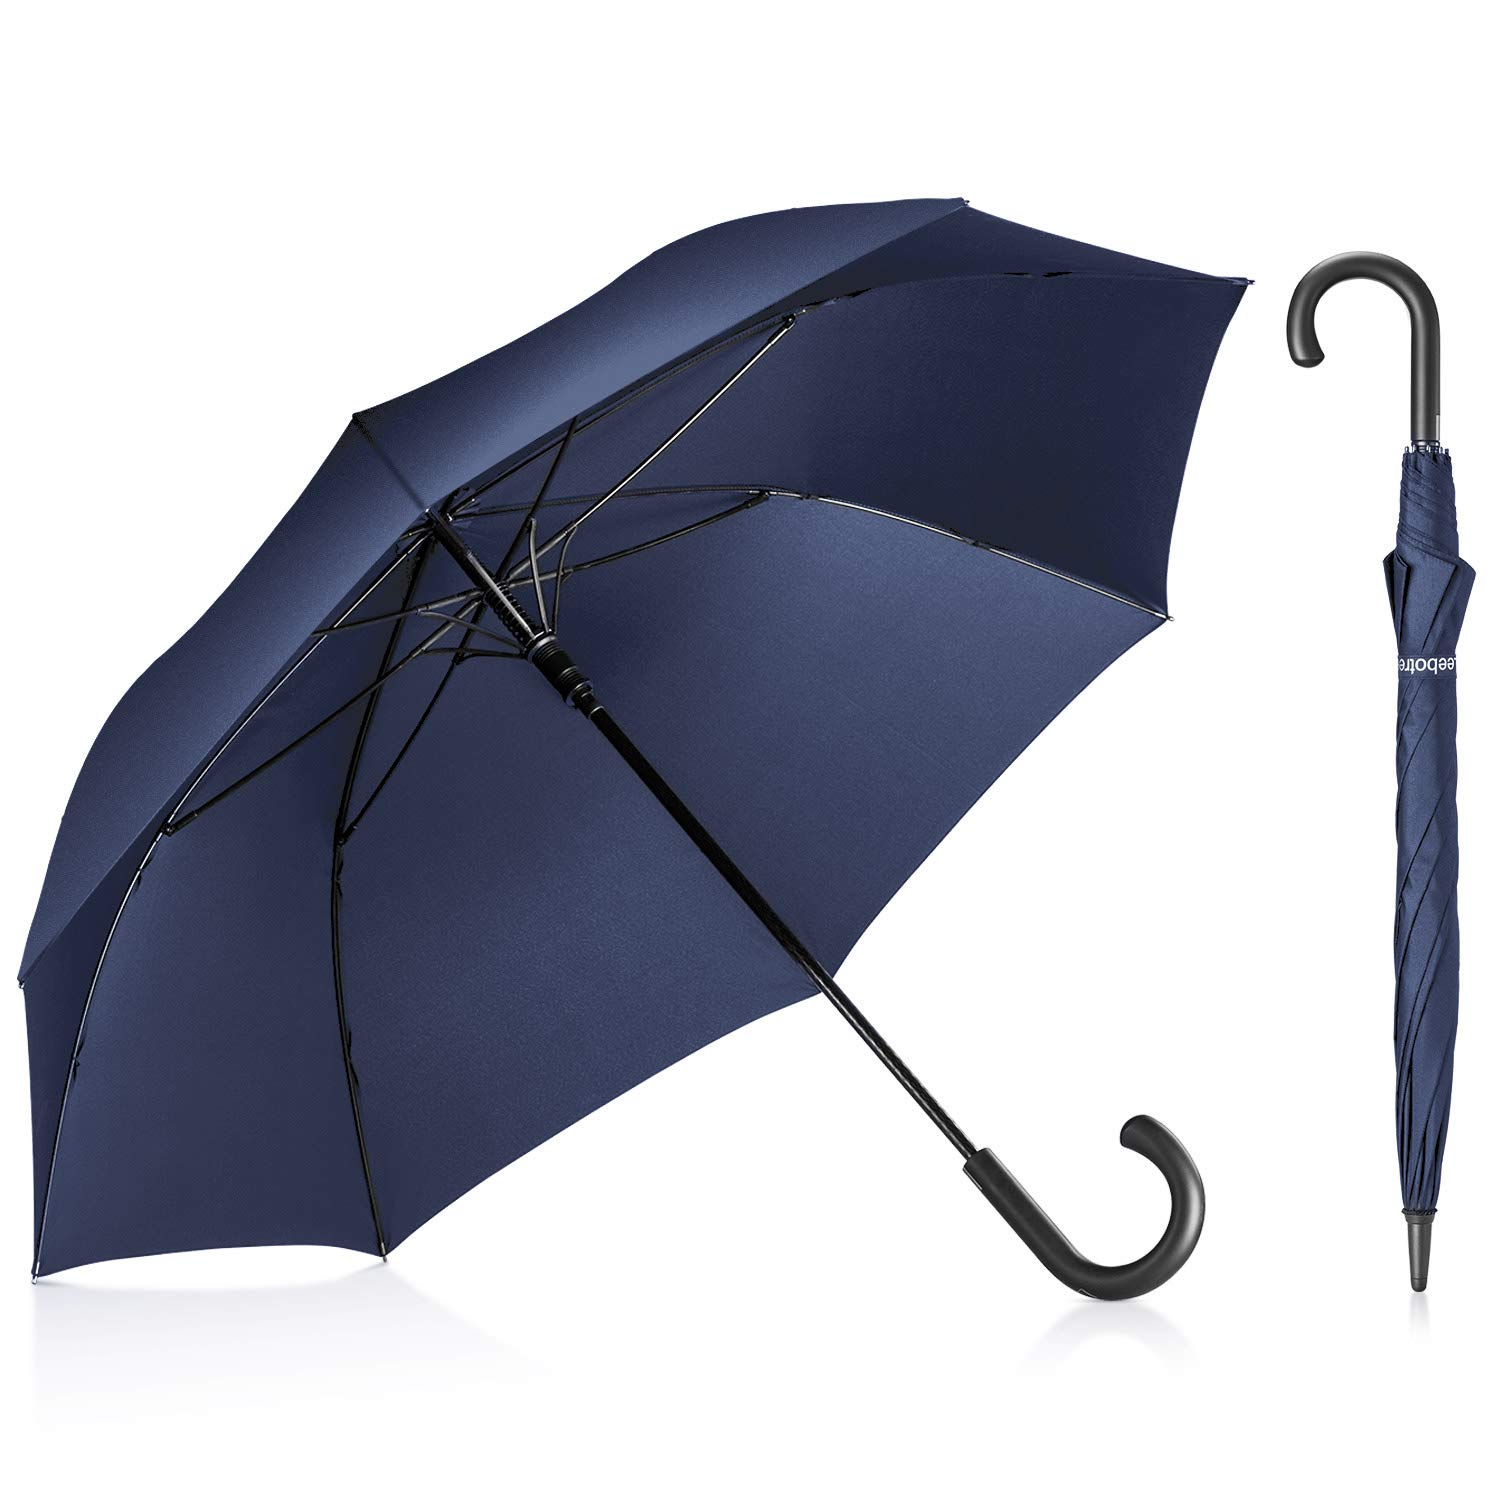 Leebotree Stick Umbrella, Auto Open Windproof Umbrella with 51 Inch Large Canopy Waterproof and J Handle for Men Women (Blue) by Leebotree